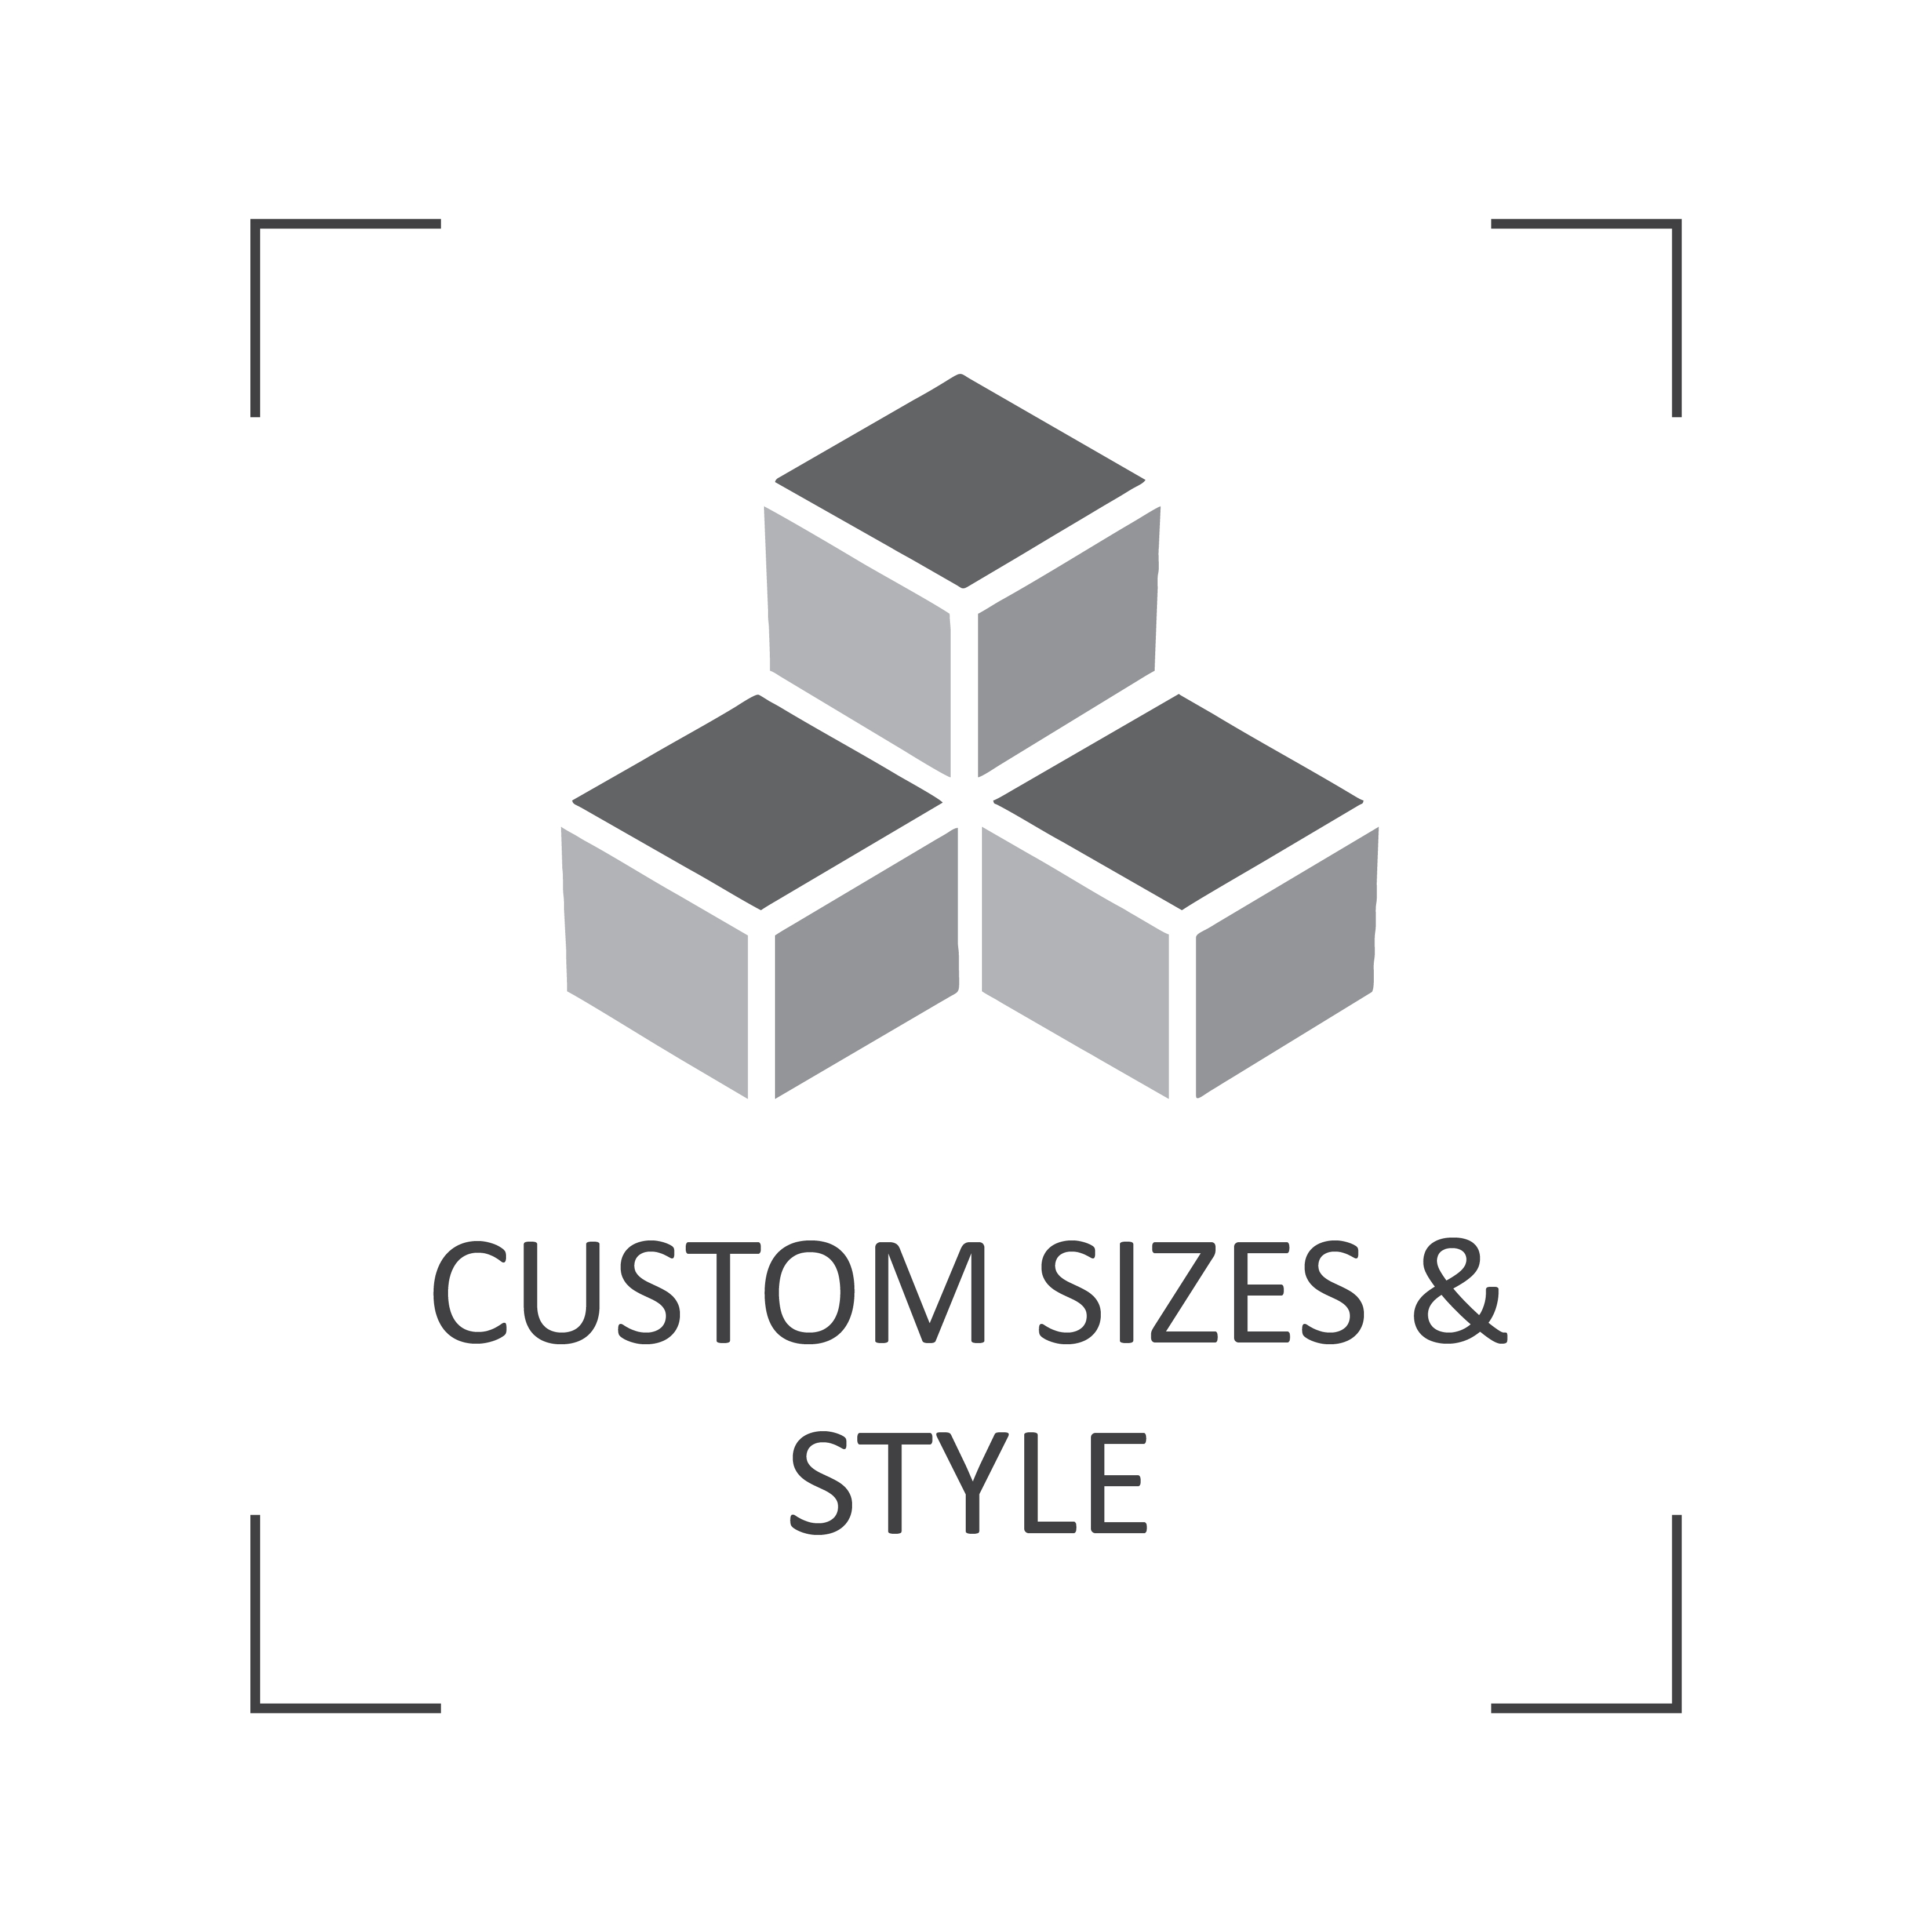 Custom sizes & styles